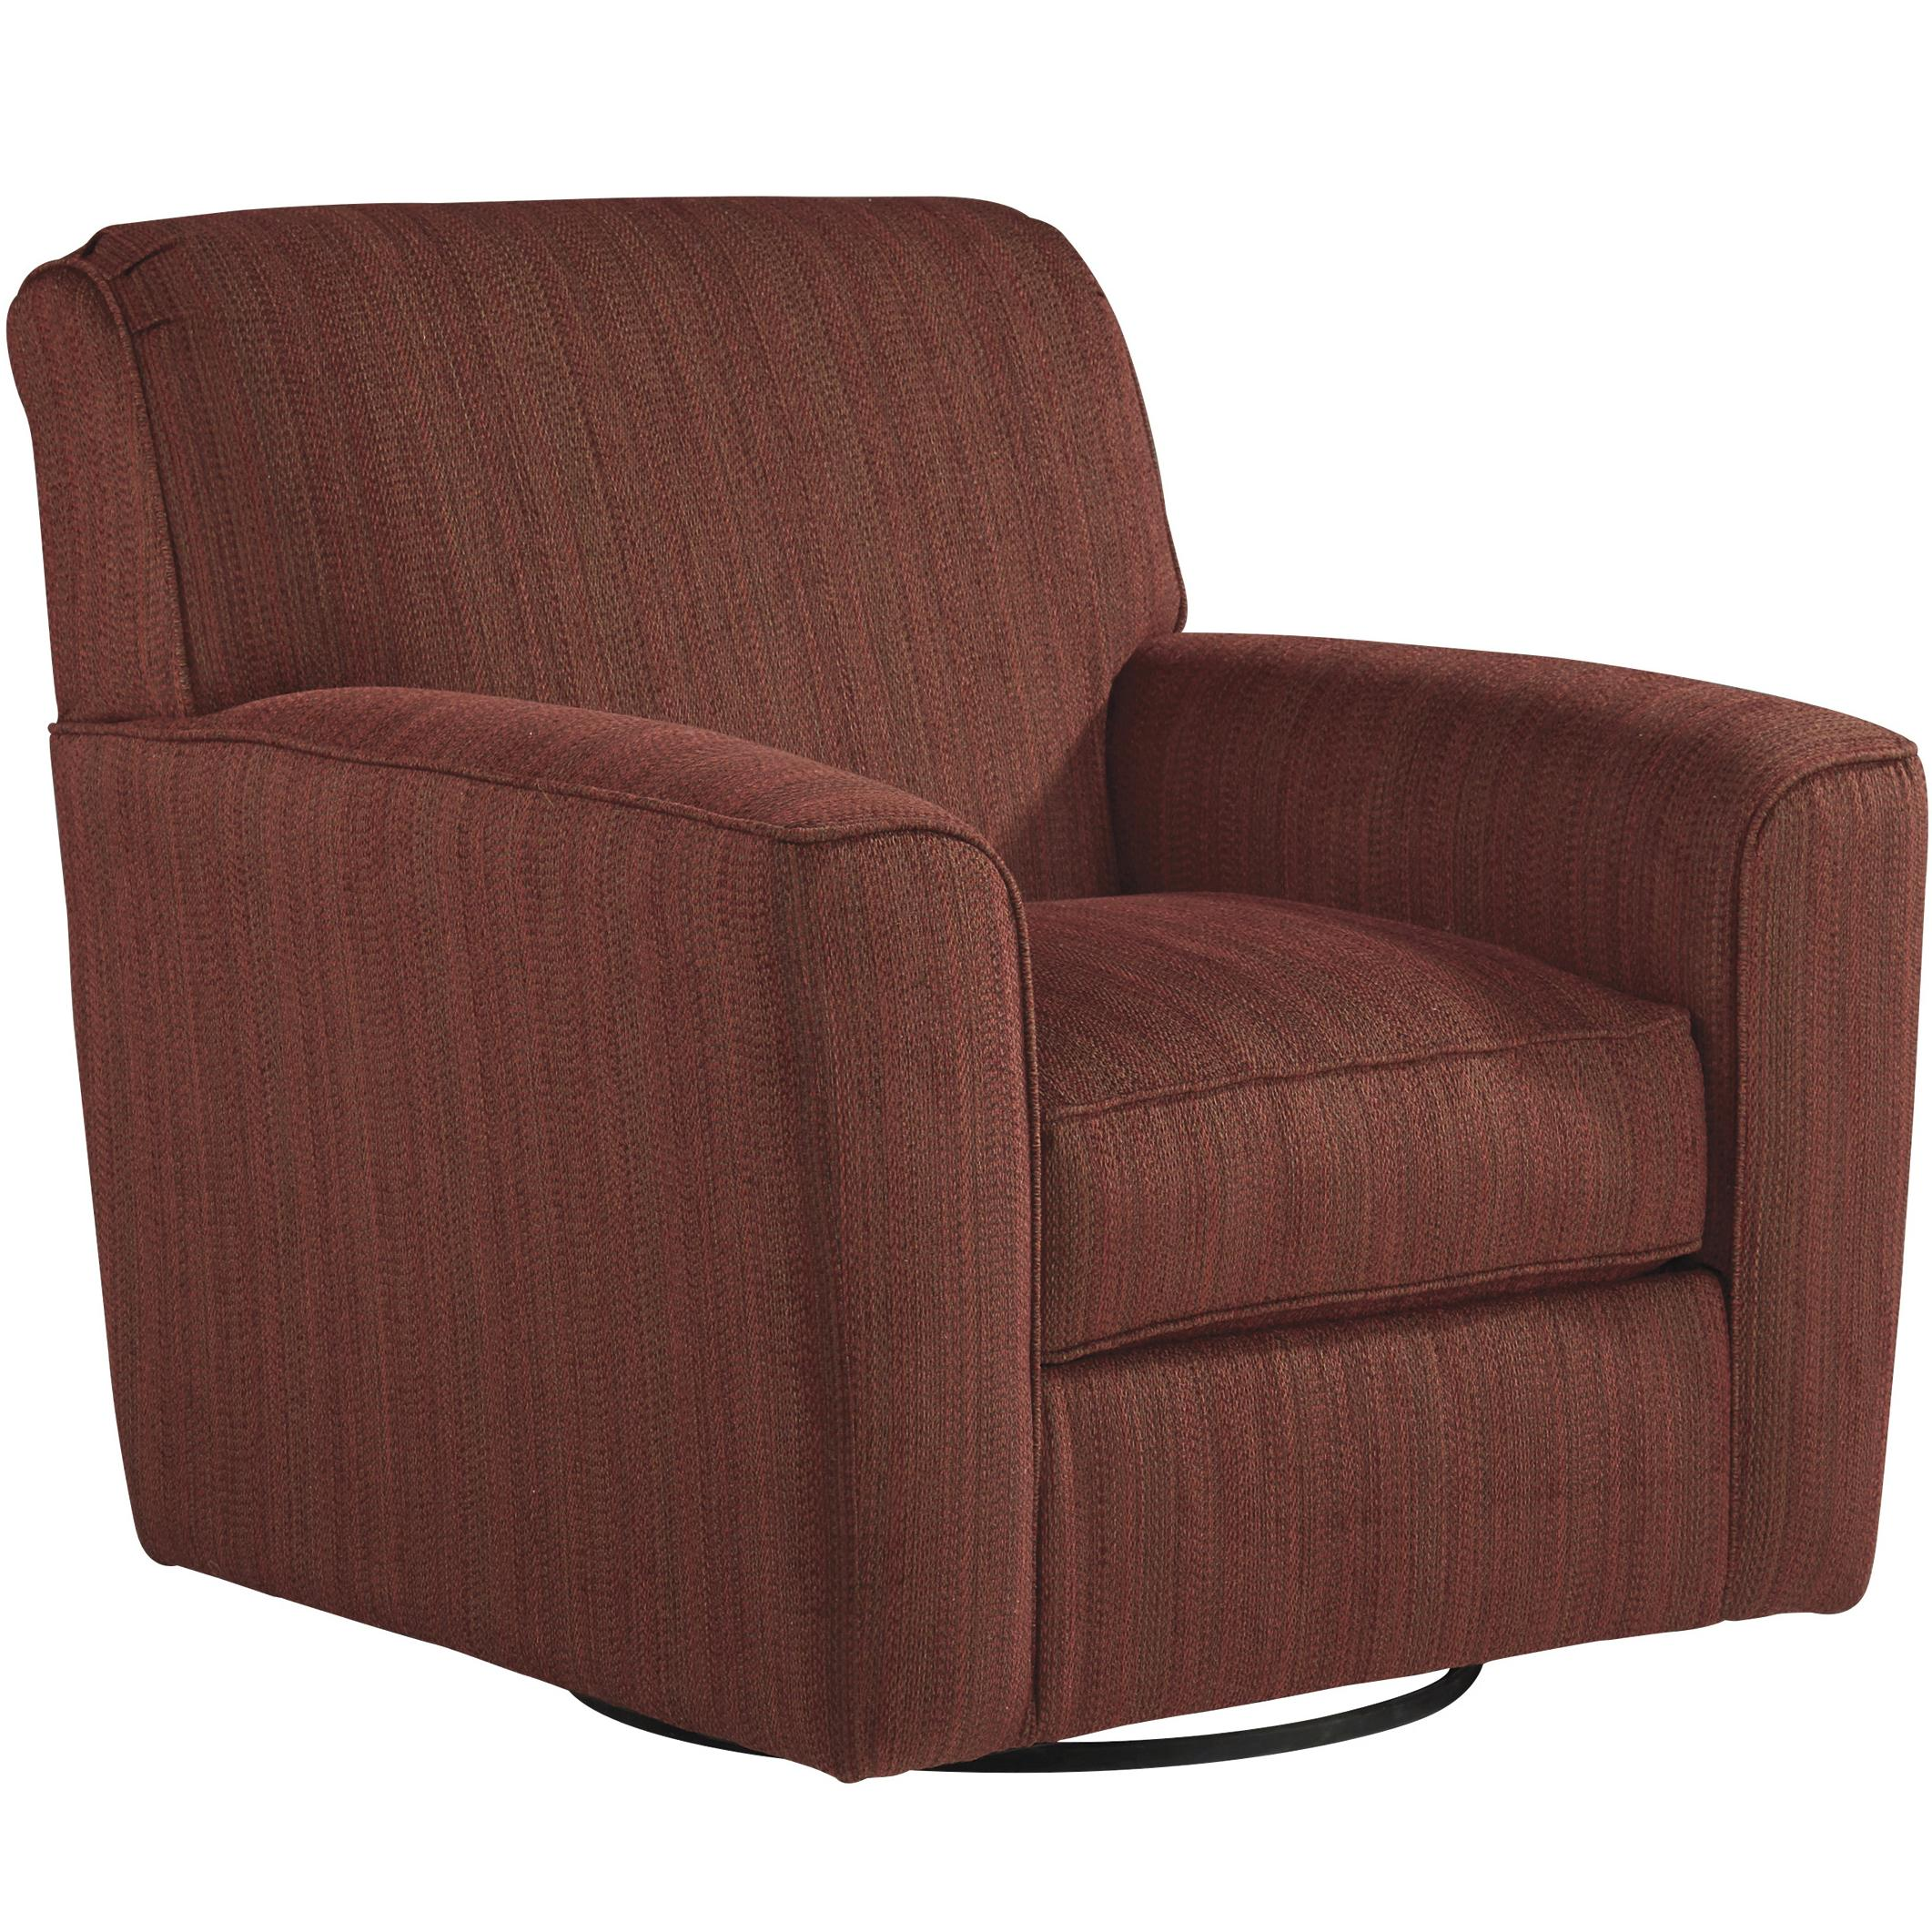 Benchcraft Doralin - Steel Contemporary Swivel Accent Chair - Item Number: 8680044